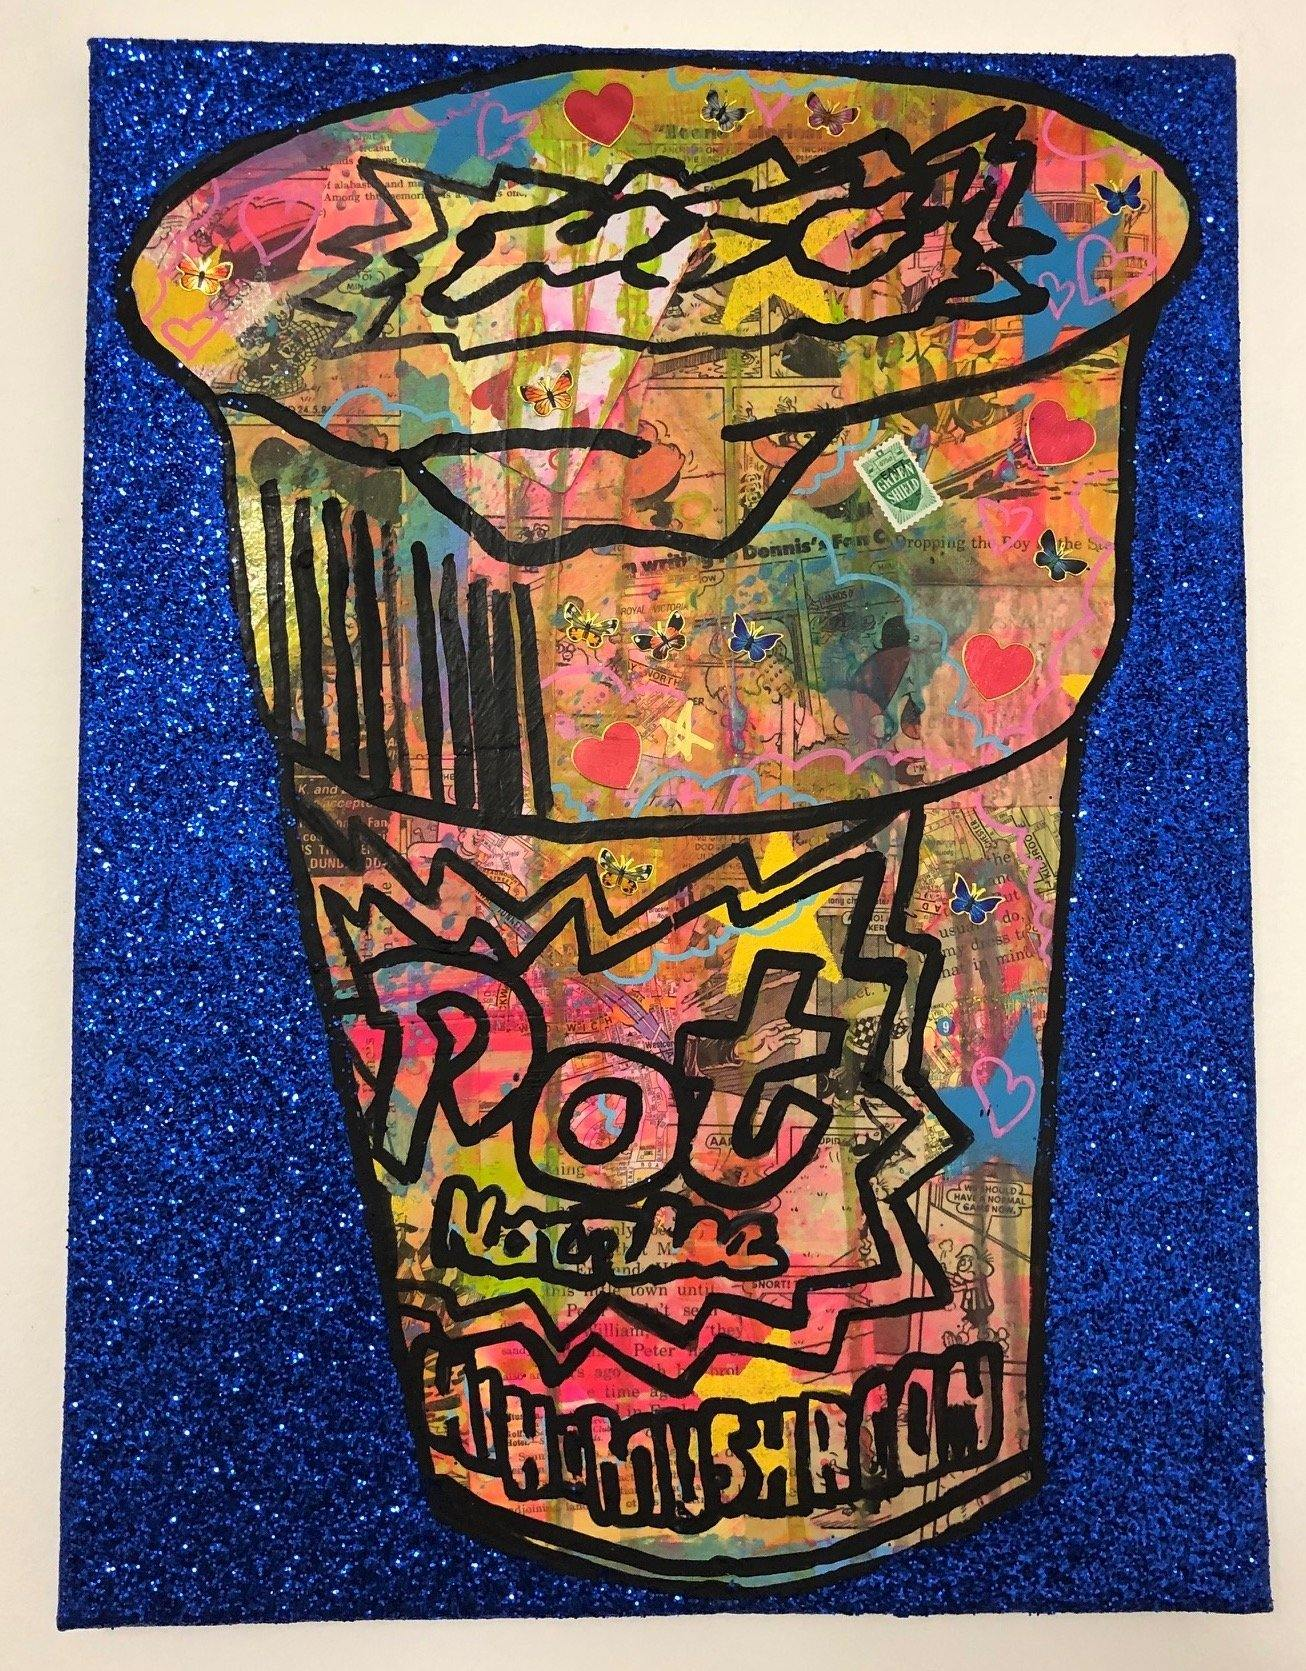 Blue pop noodling by Barrie J Davies 2019, mixed media on canvas, unframed, 30cm x 40cm. Barrie J Davies is an Artist - Pop Art and Street art inspired Artist based in Brighton England UK - Pop Art Paintings, Street Art Prints & Editions available.